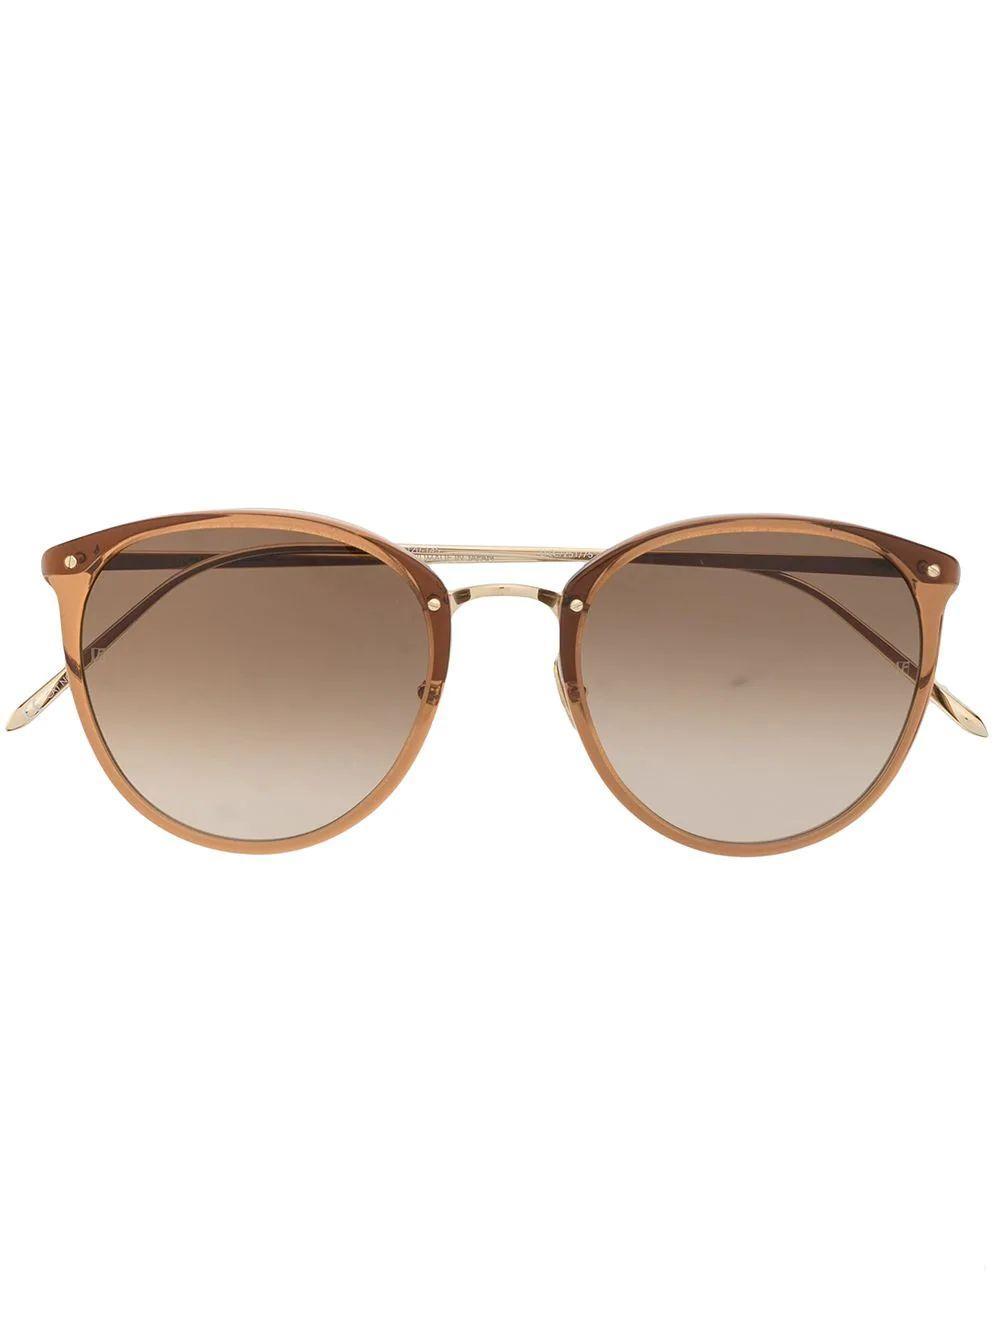 Calthorpe Sunglasses